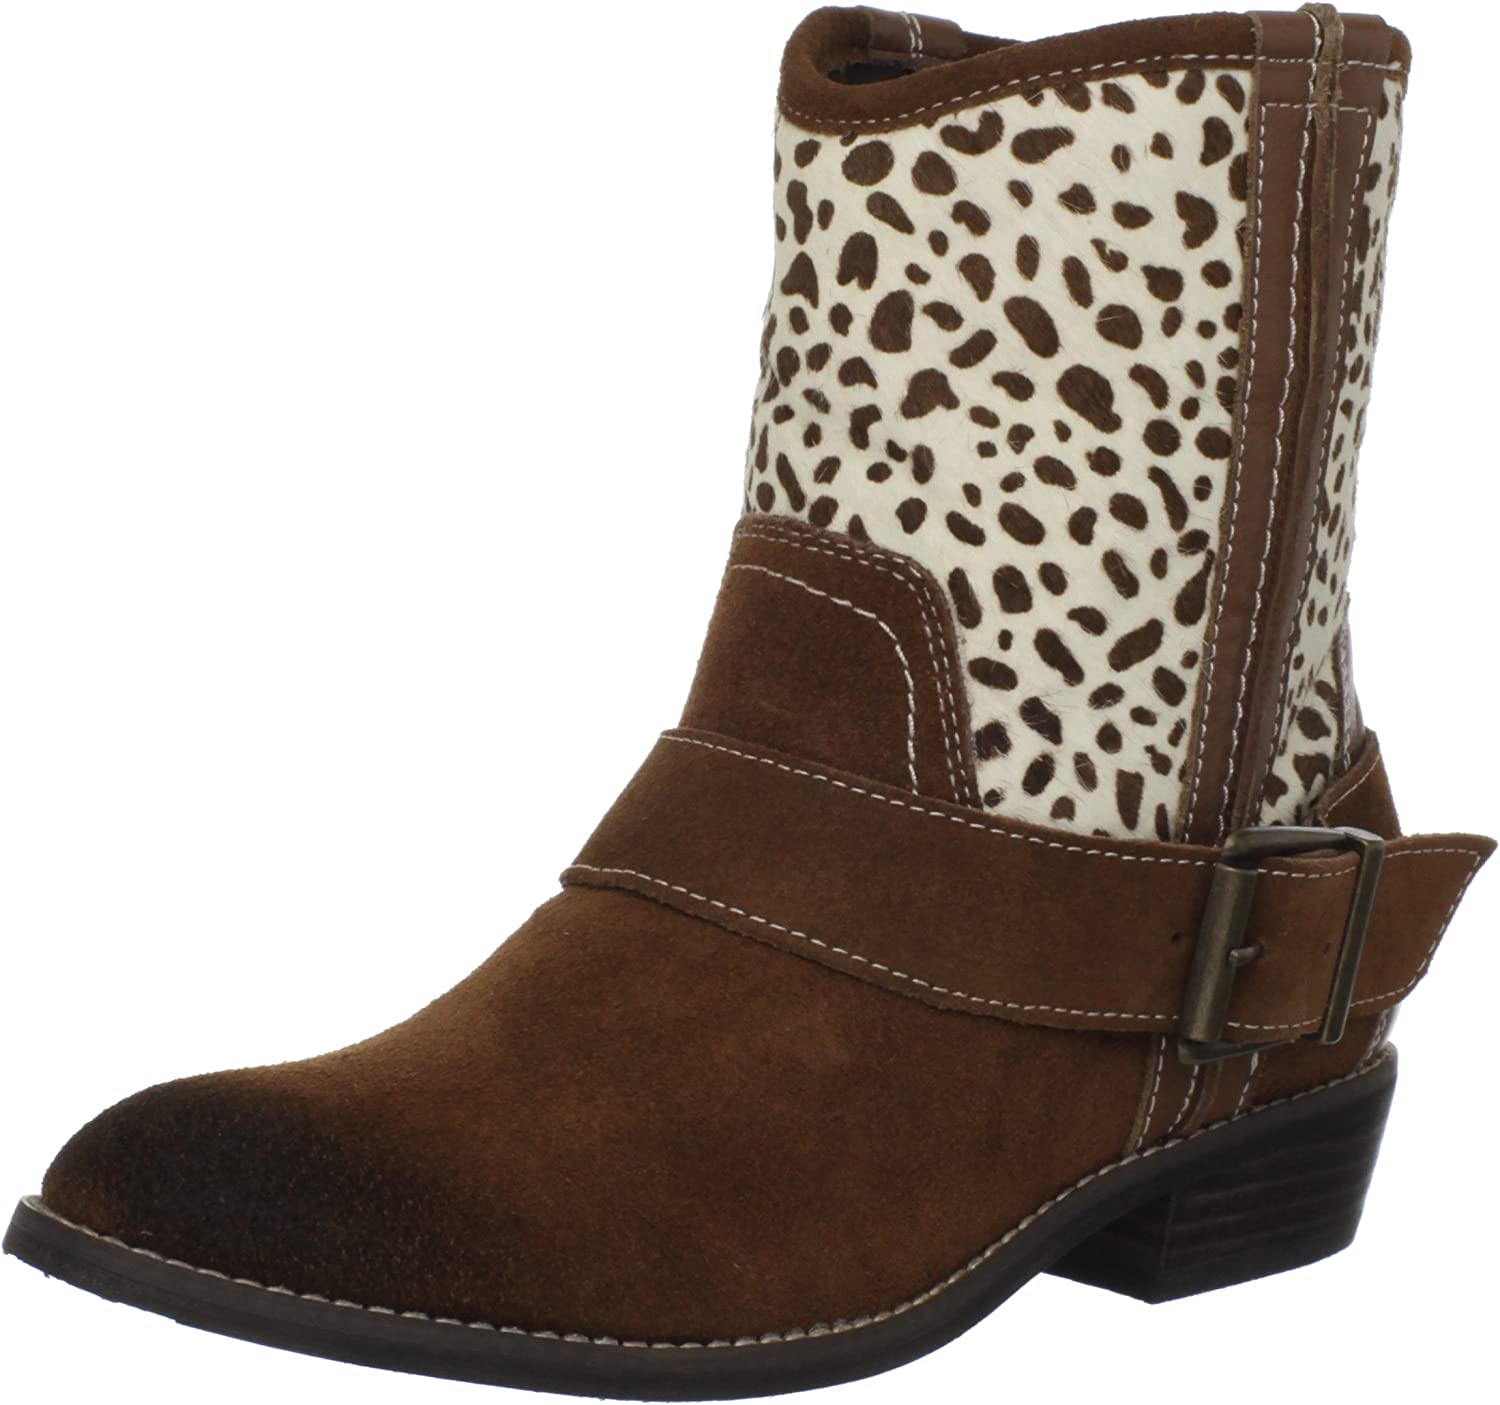 Mail order cheap Challenge the lowest price of Japan ☆ Kelsi Dagger Brooklyn Women's Ankle Boot Tempest